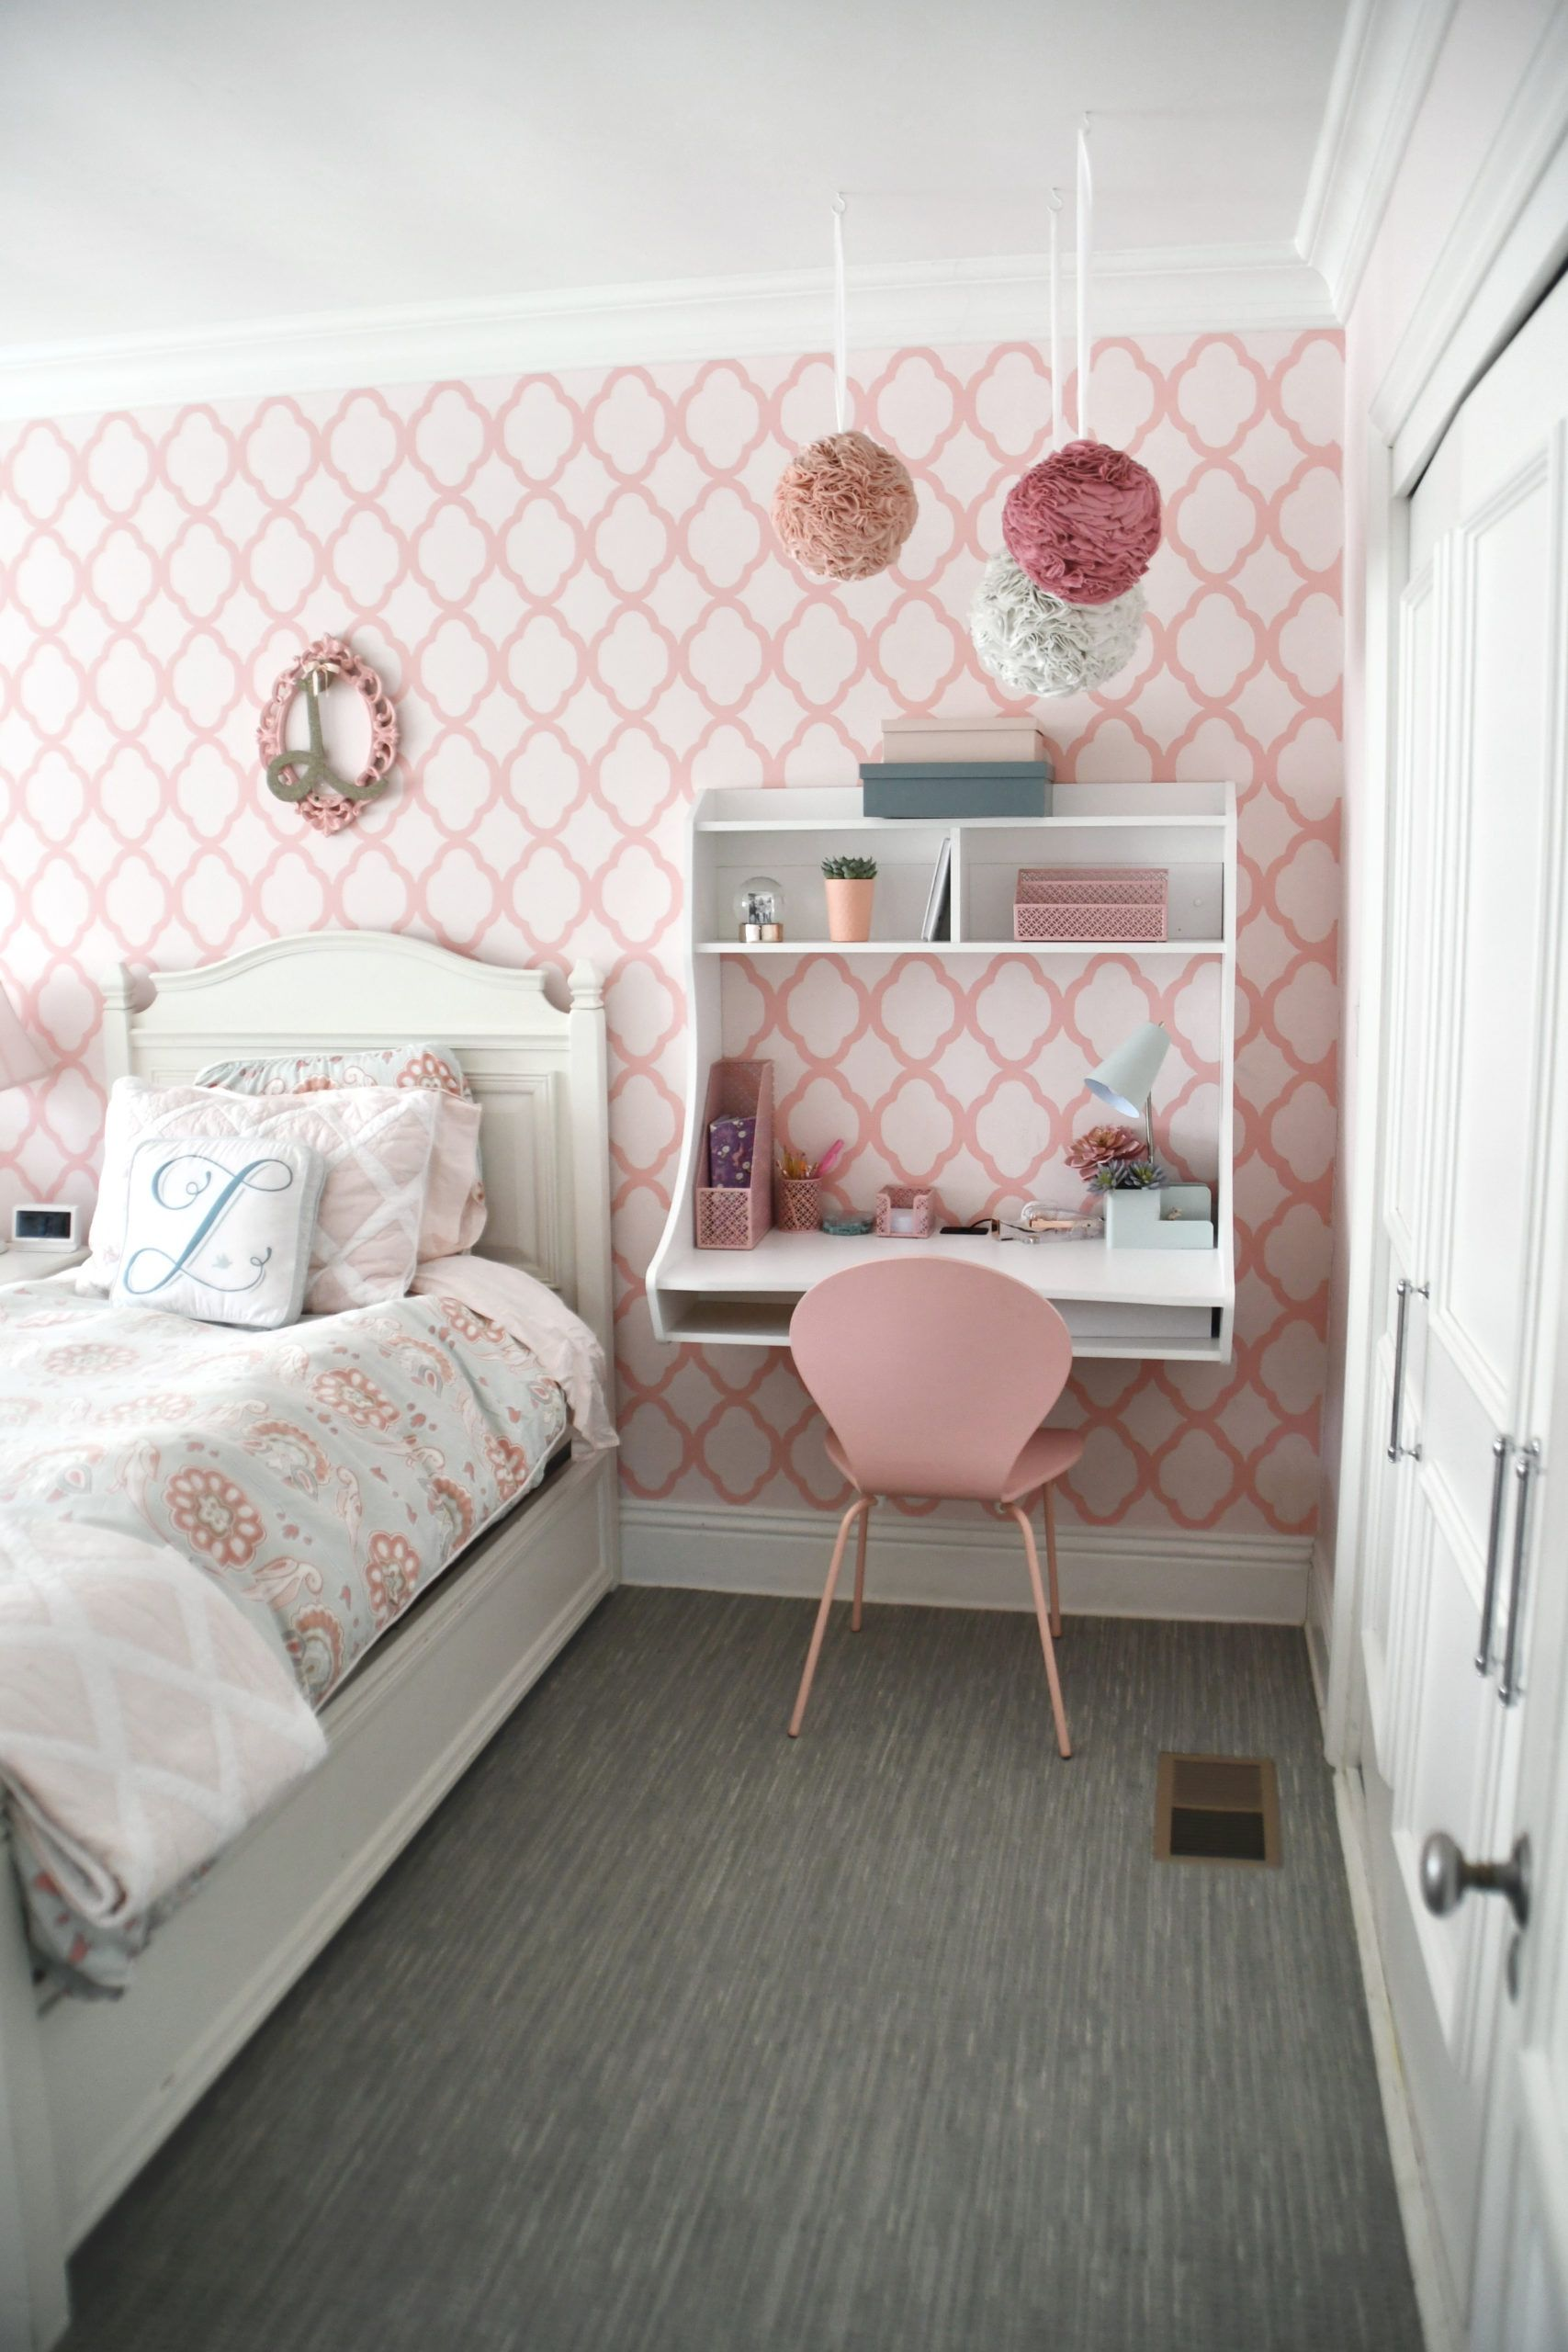 Shared Girls Room That Maximizes The Small Space Project Nursery Shared Girls Room Desk For Girls Room Shared Girls Bedroom